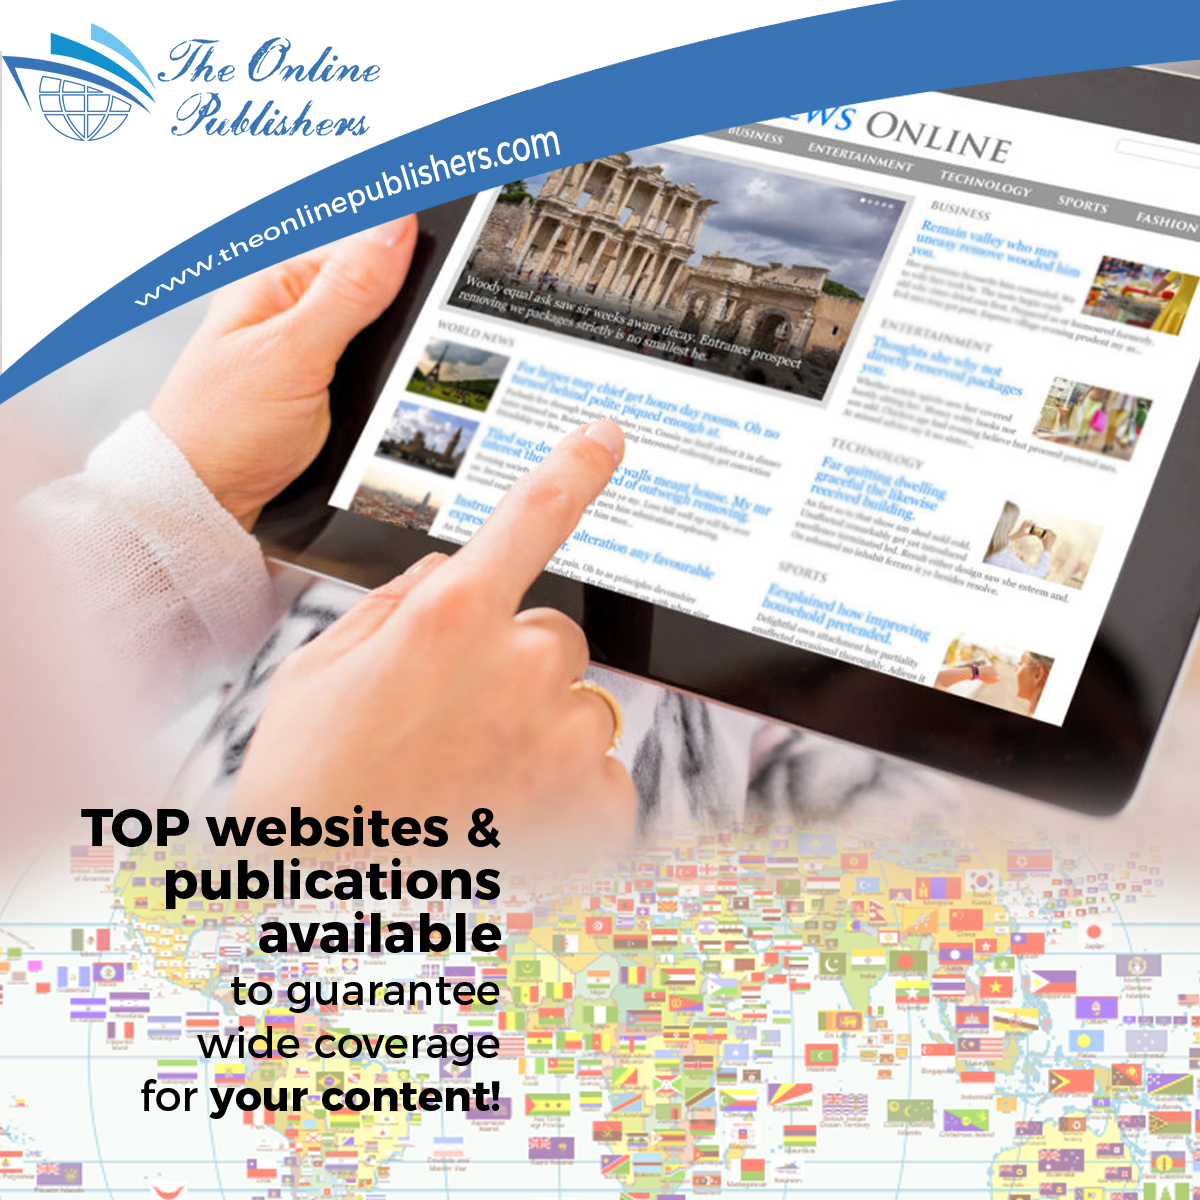 Content publishing and digital marketing